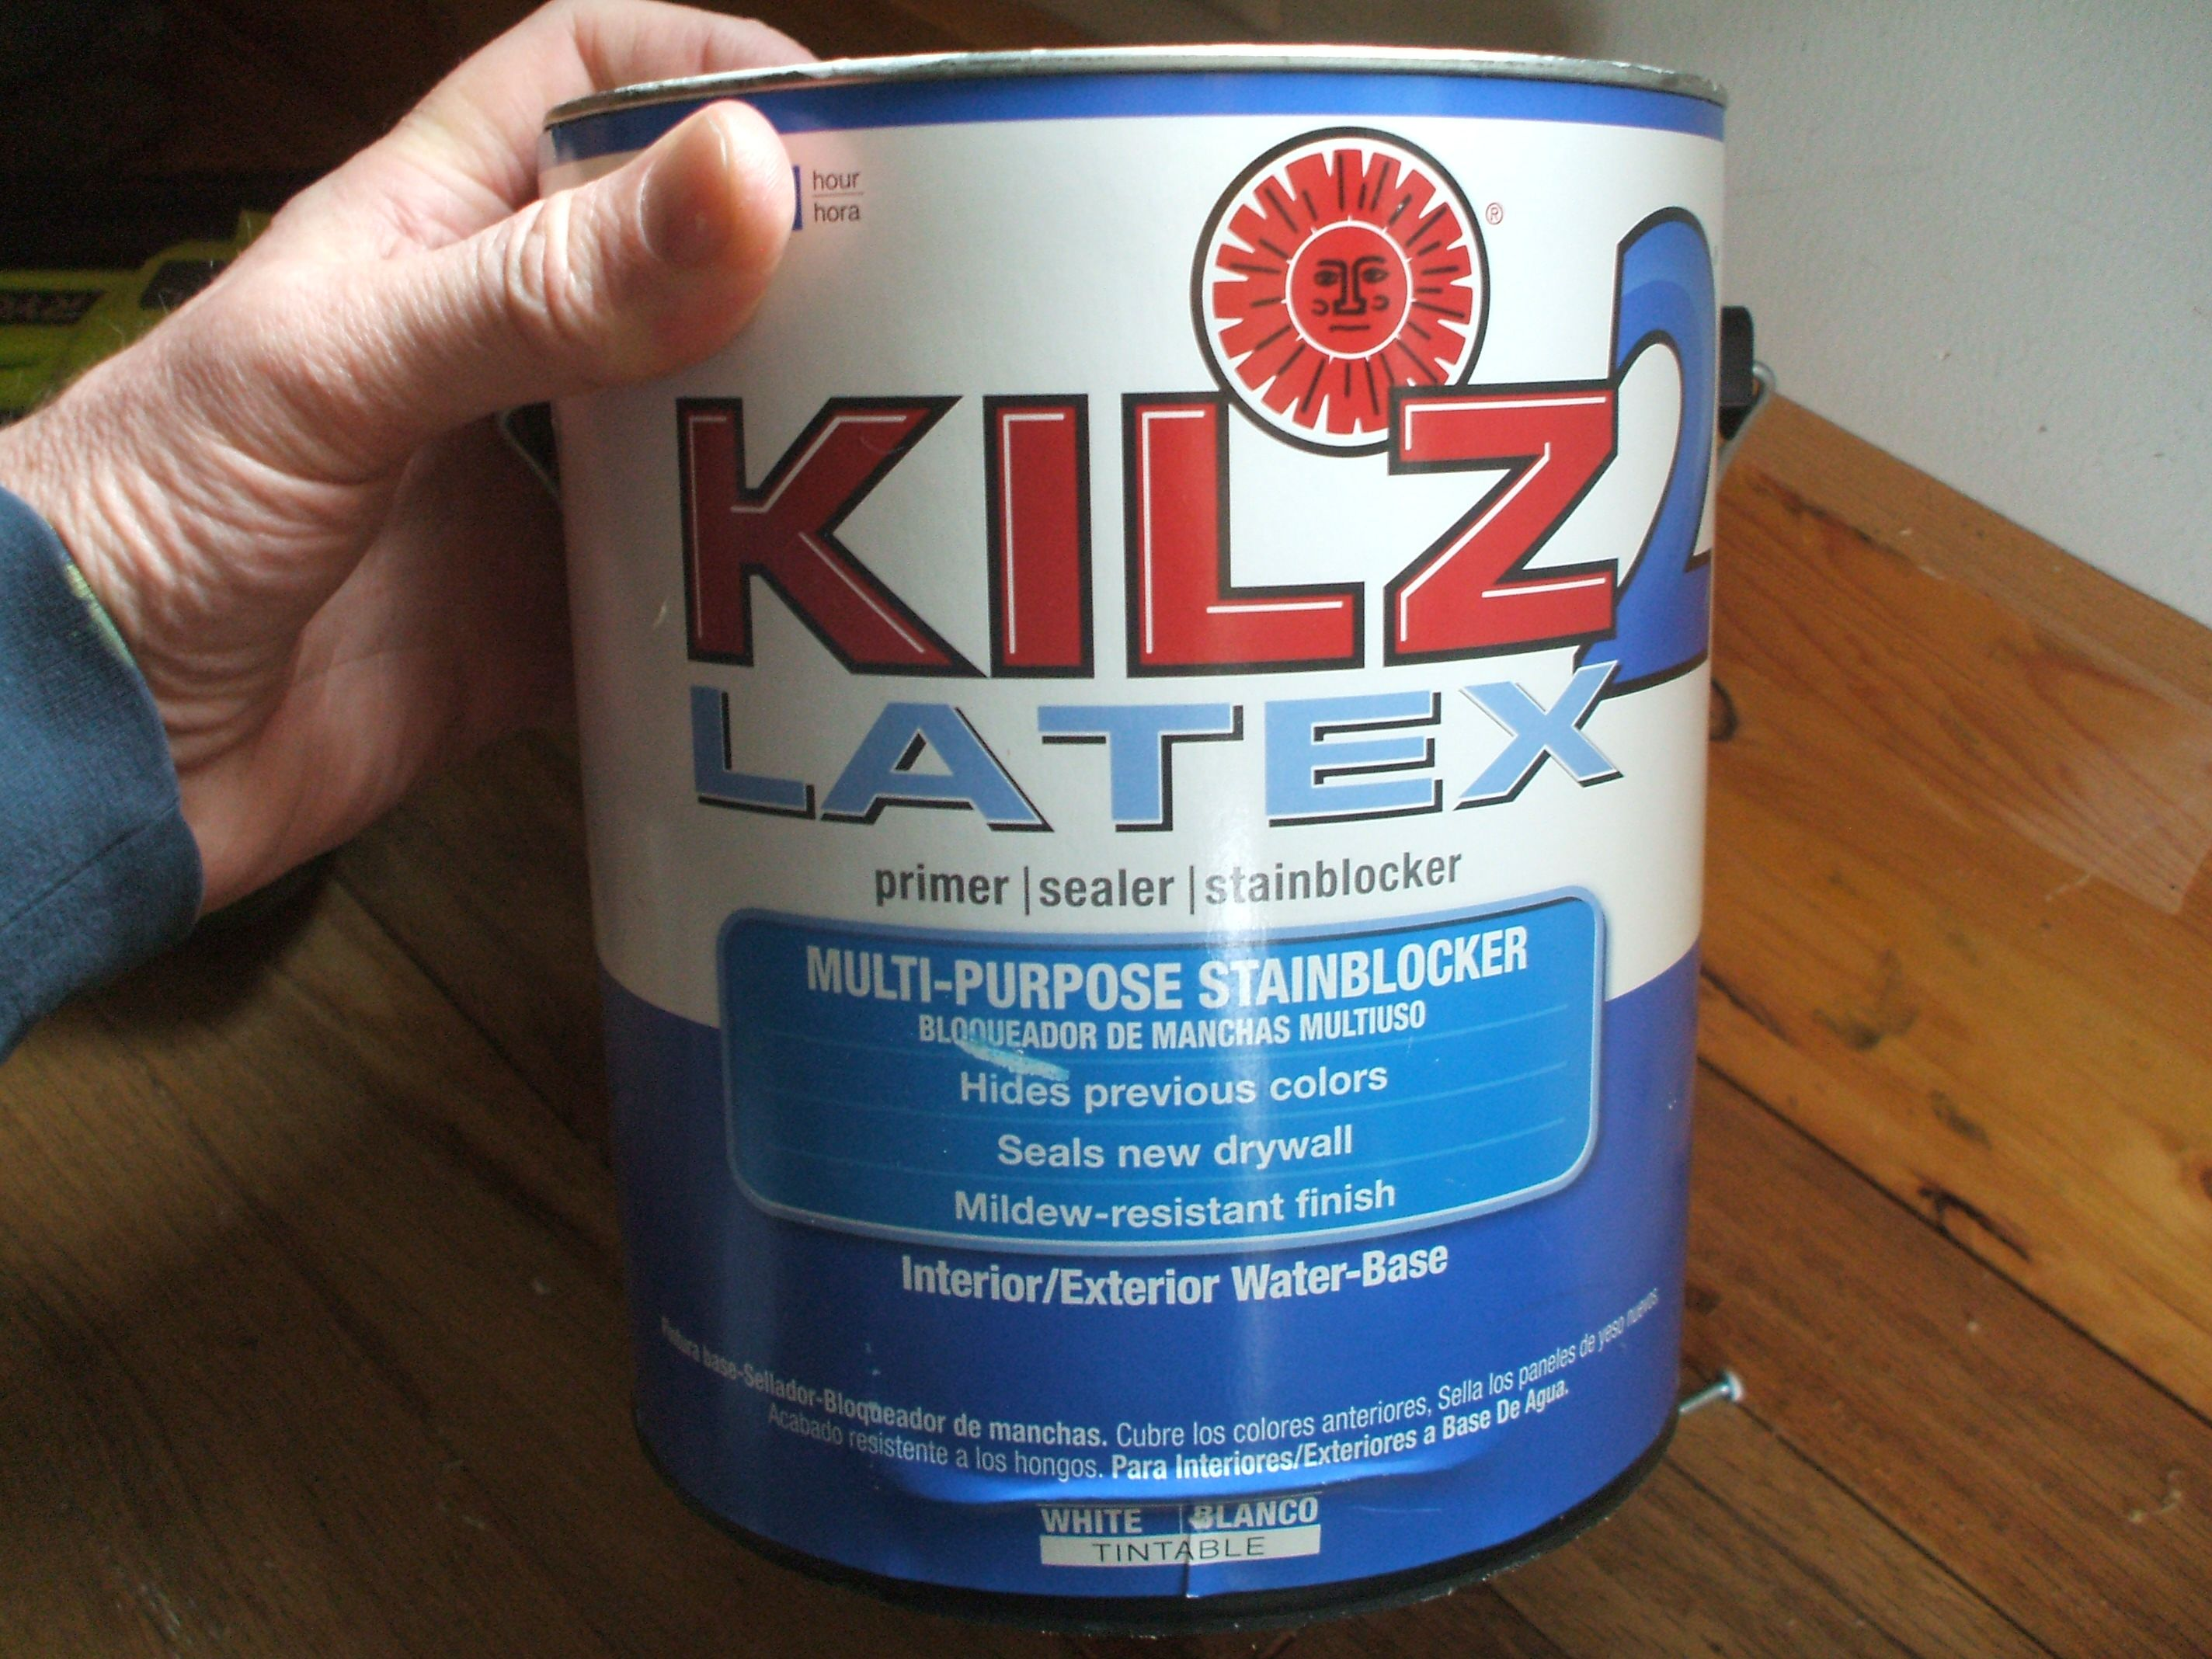 Kilz 2 latex interior exterior water based primer for Can you paint latex over oil based paint exterior